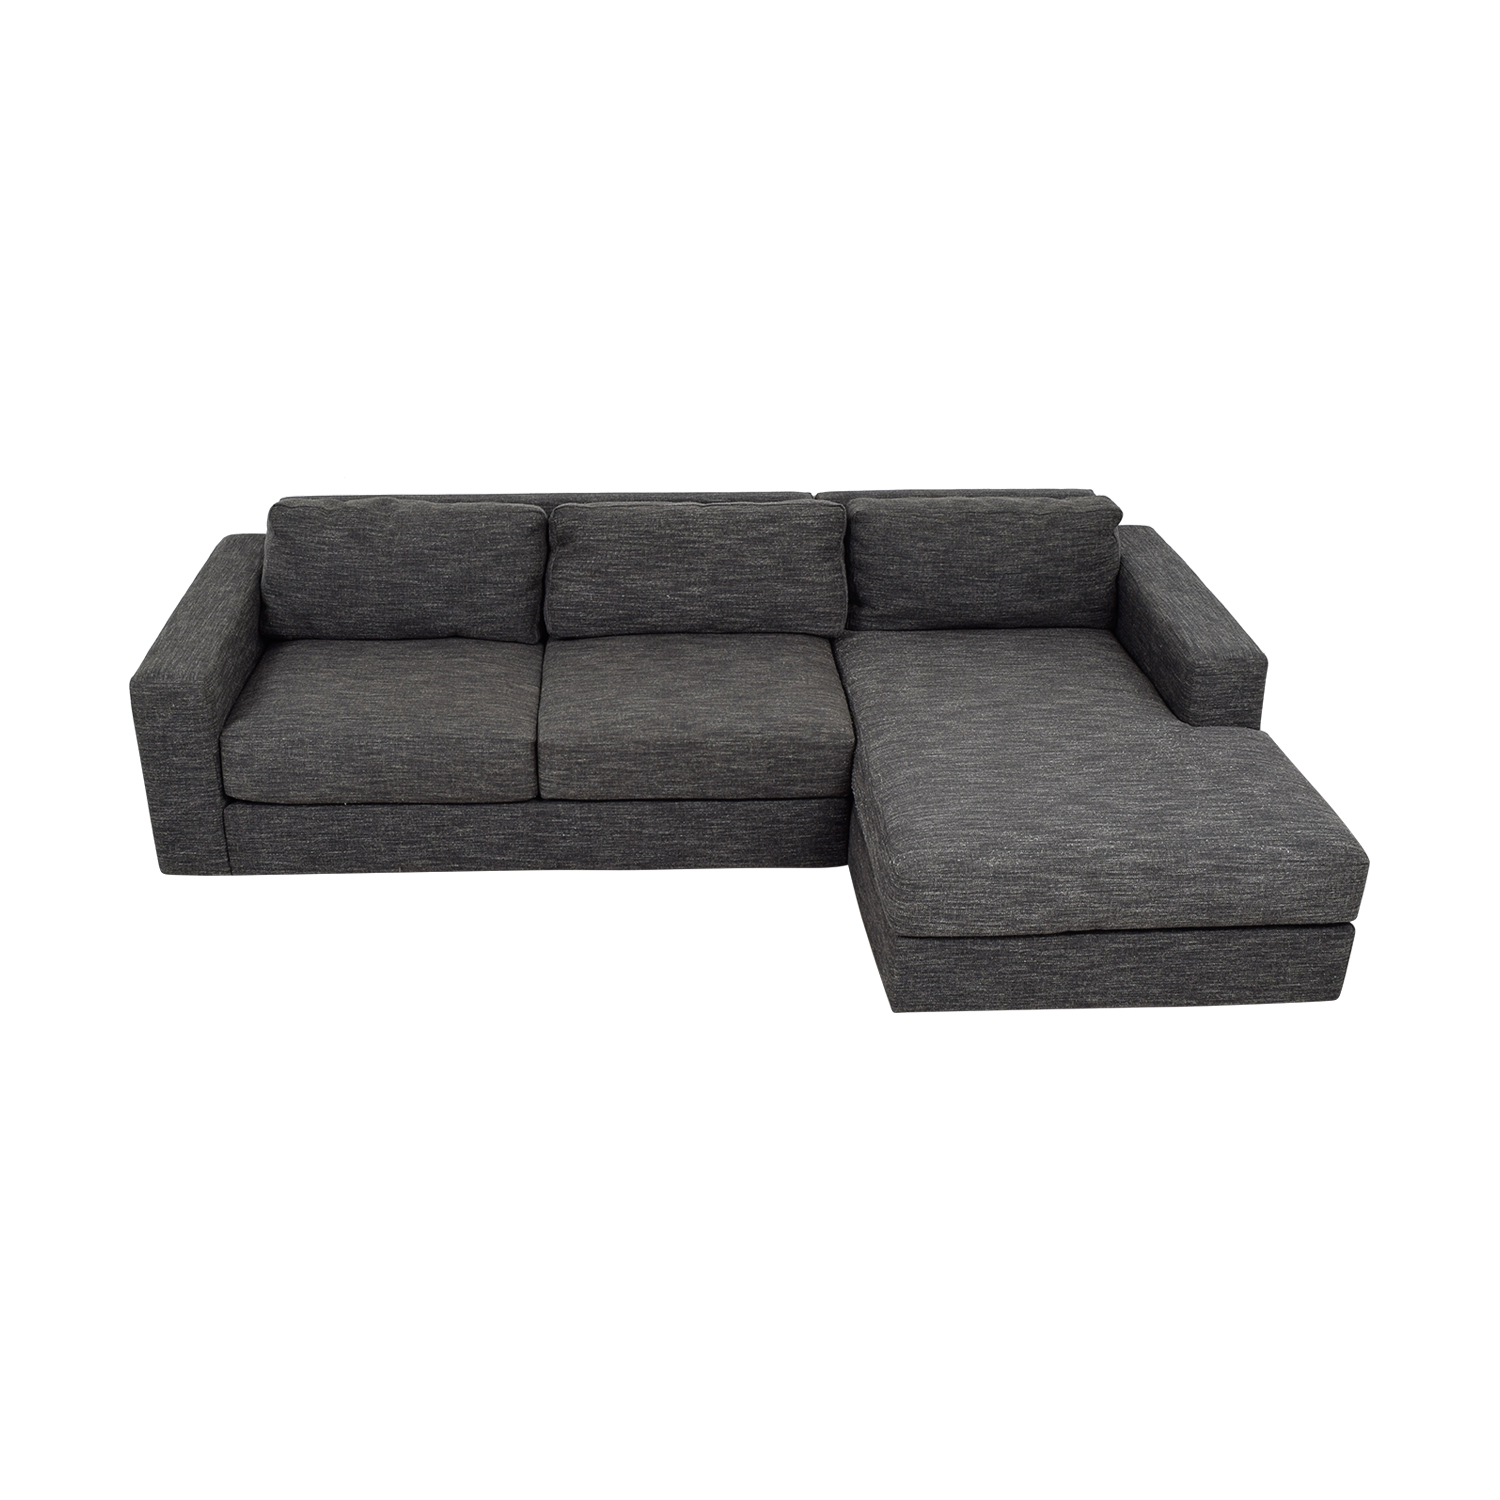 buy West Elm West Elm Urban Grey Chaise Sectional online